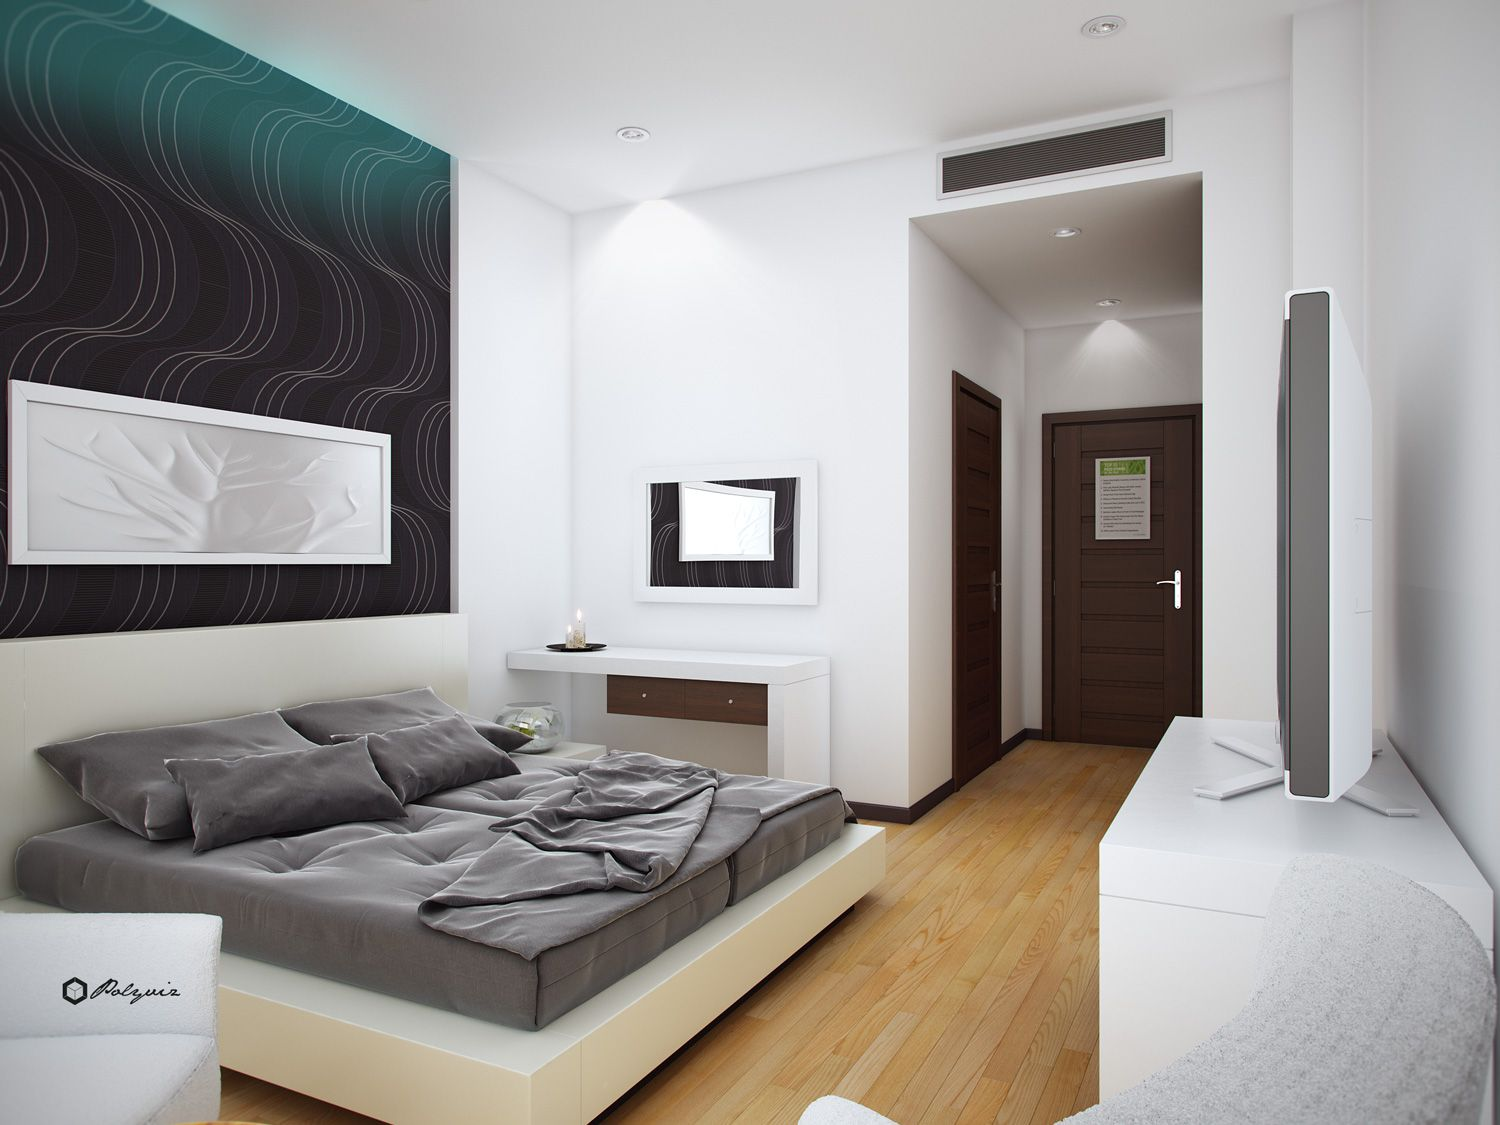 modern hotel room design - Google Search | Room Design ...